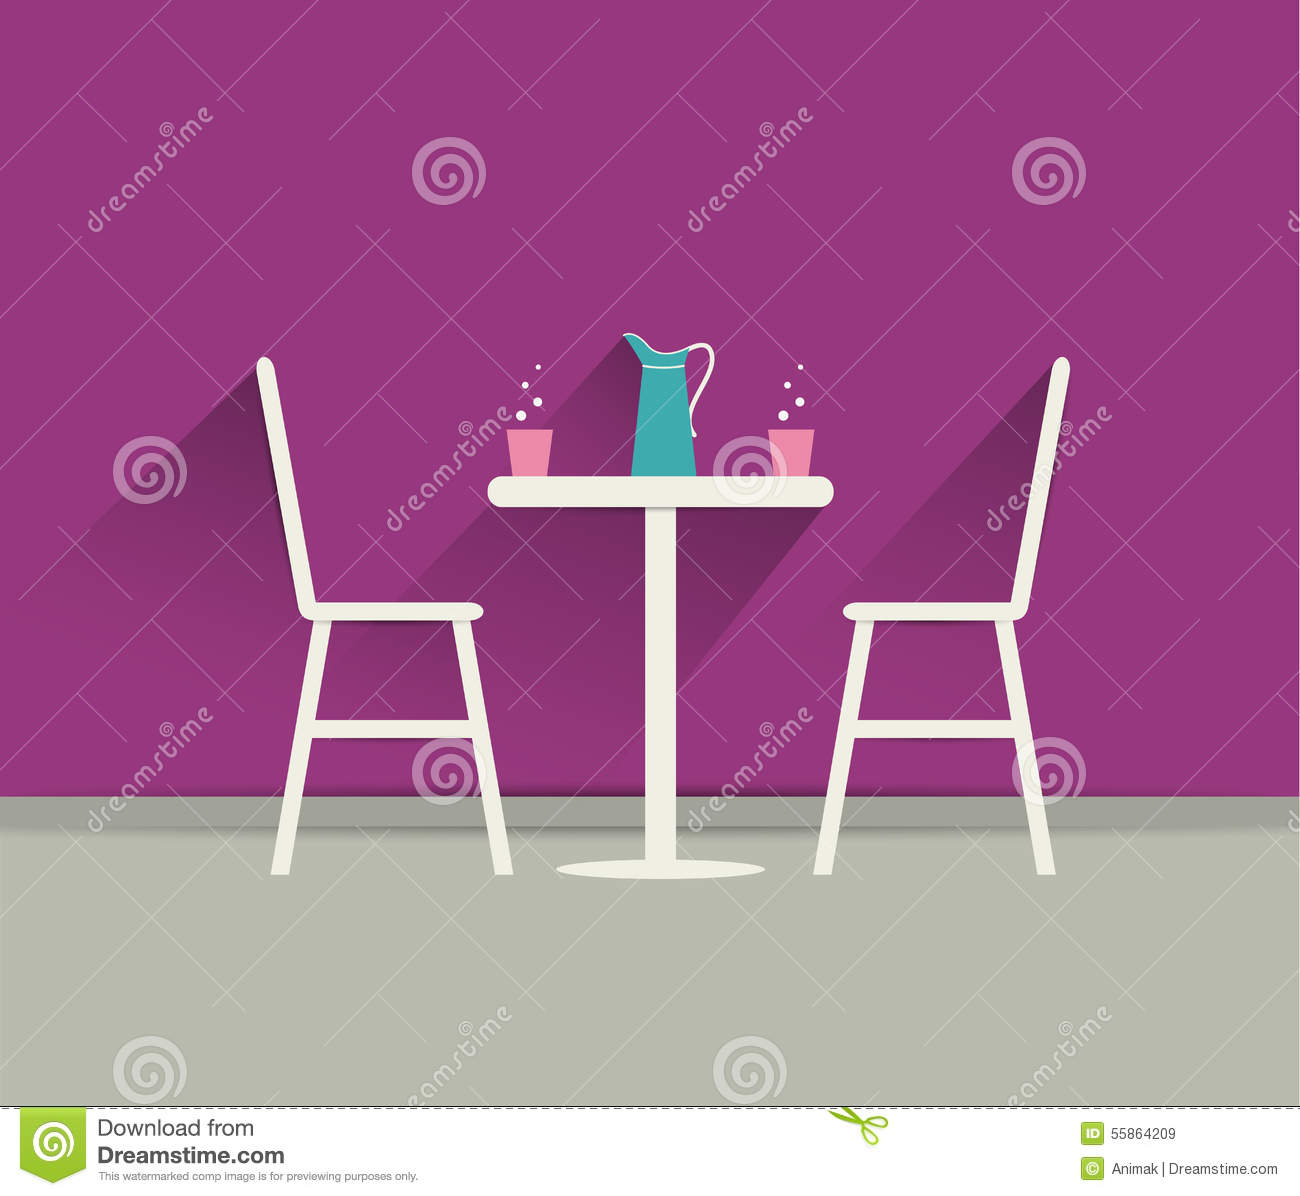 Coffee shop interior chairs and table stock vector for Table flat design